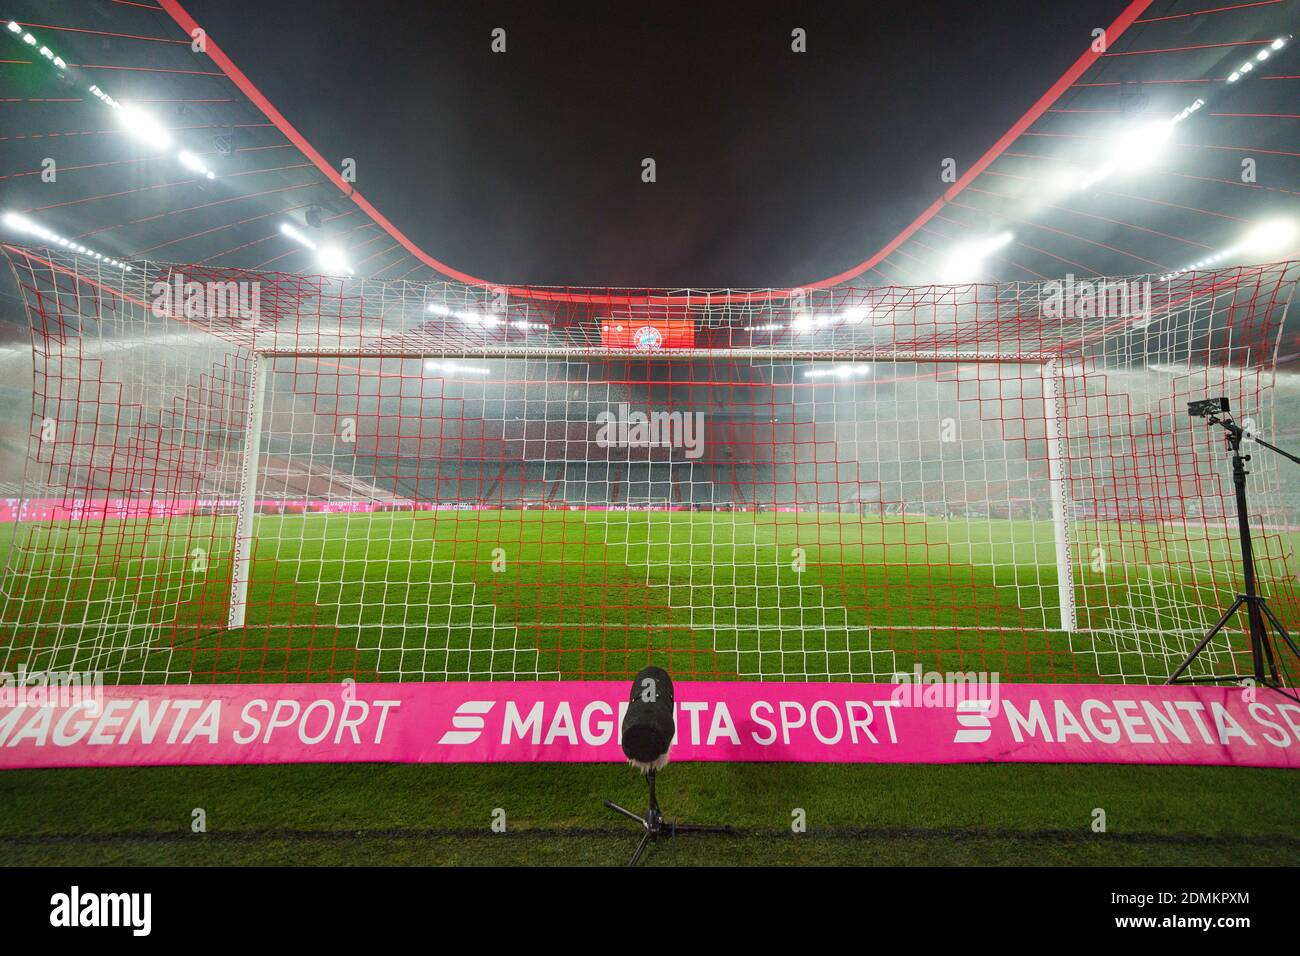 German Football League High Resolution Stock Photography and ...